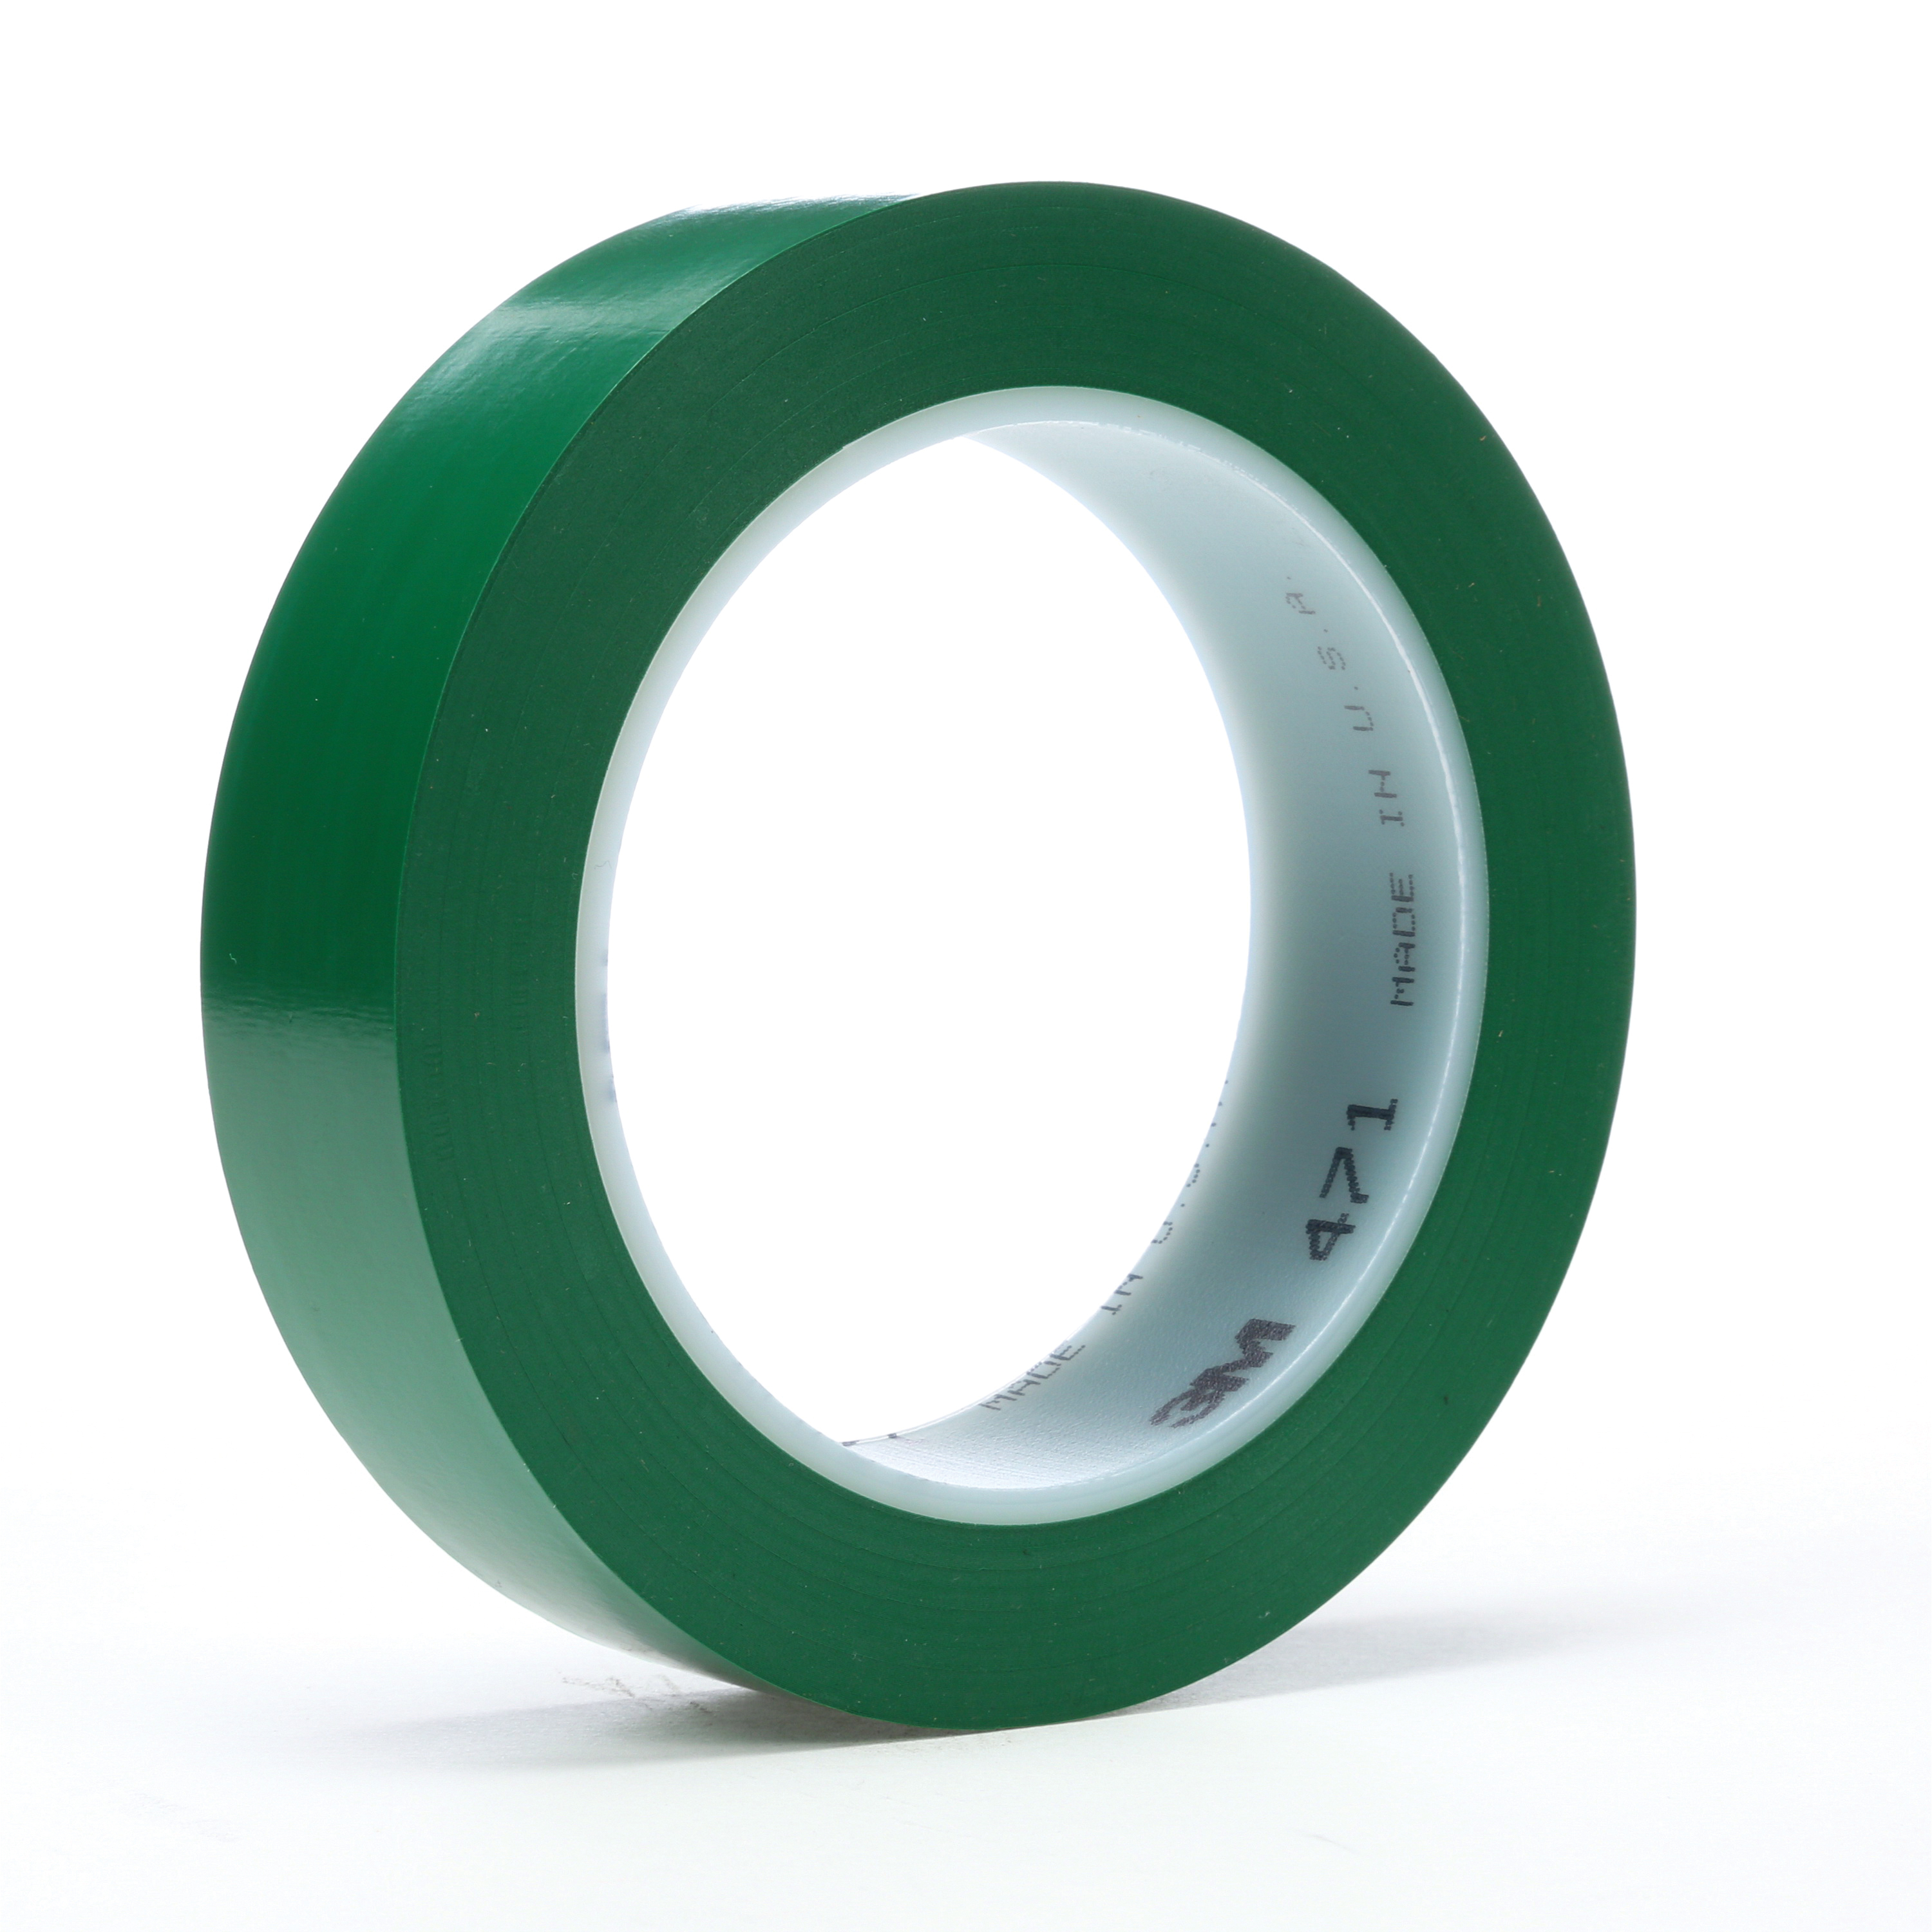 3M™ 021200-03144 High Performance Vinyl Tape, 36 yd L x 3/4 in W, 5.2 mil THK, Rubber Adhesive, Vinyl Backing, Green